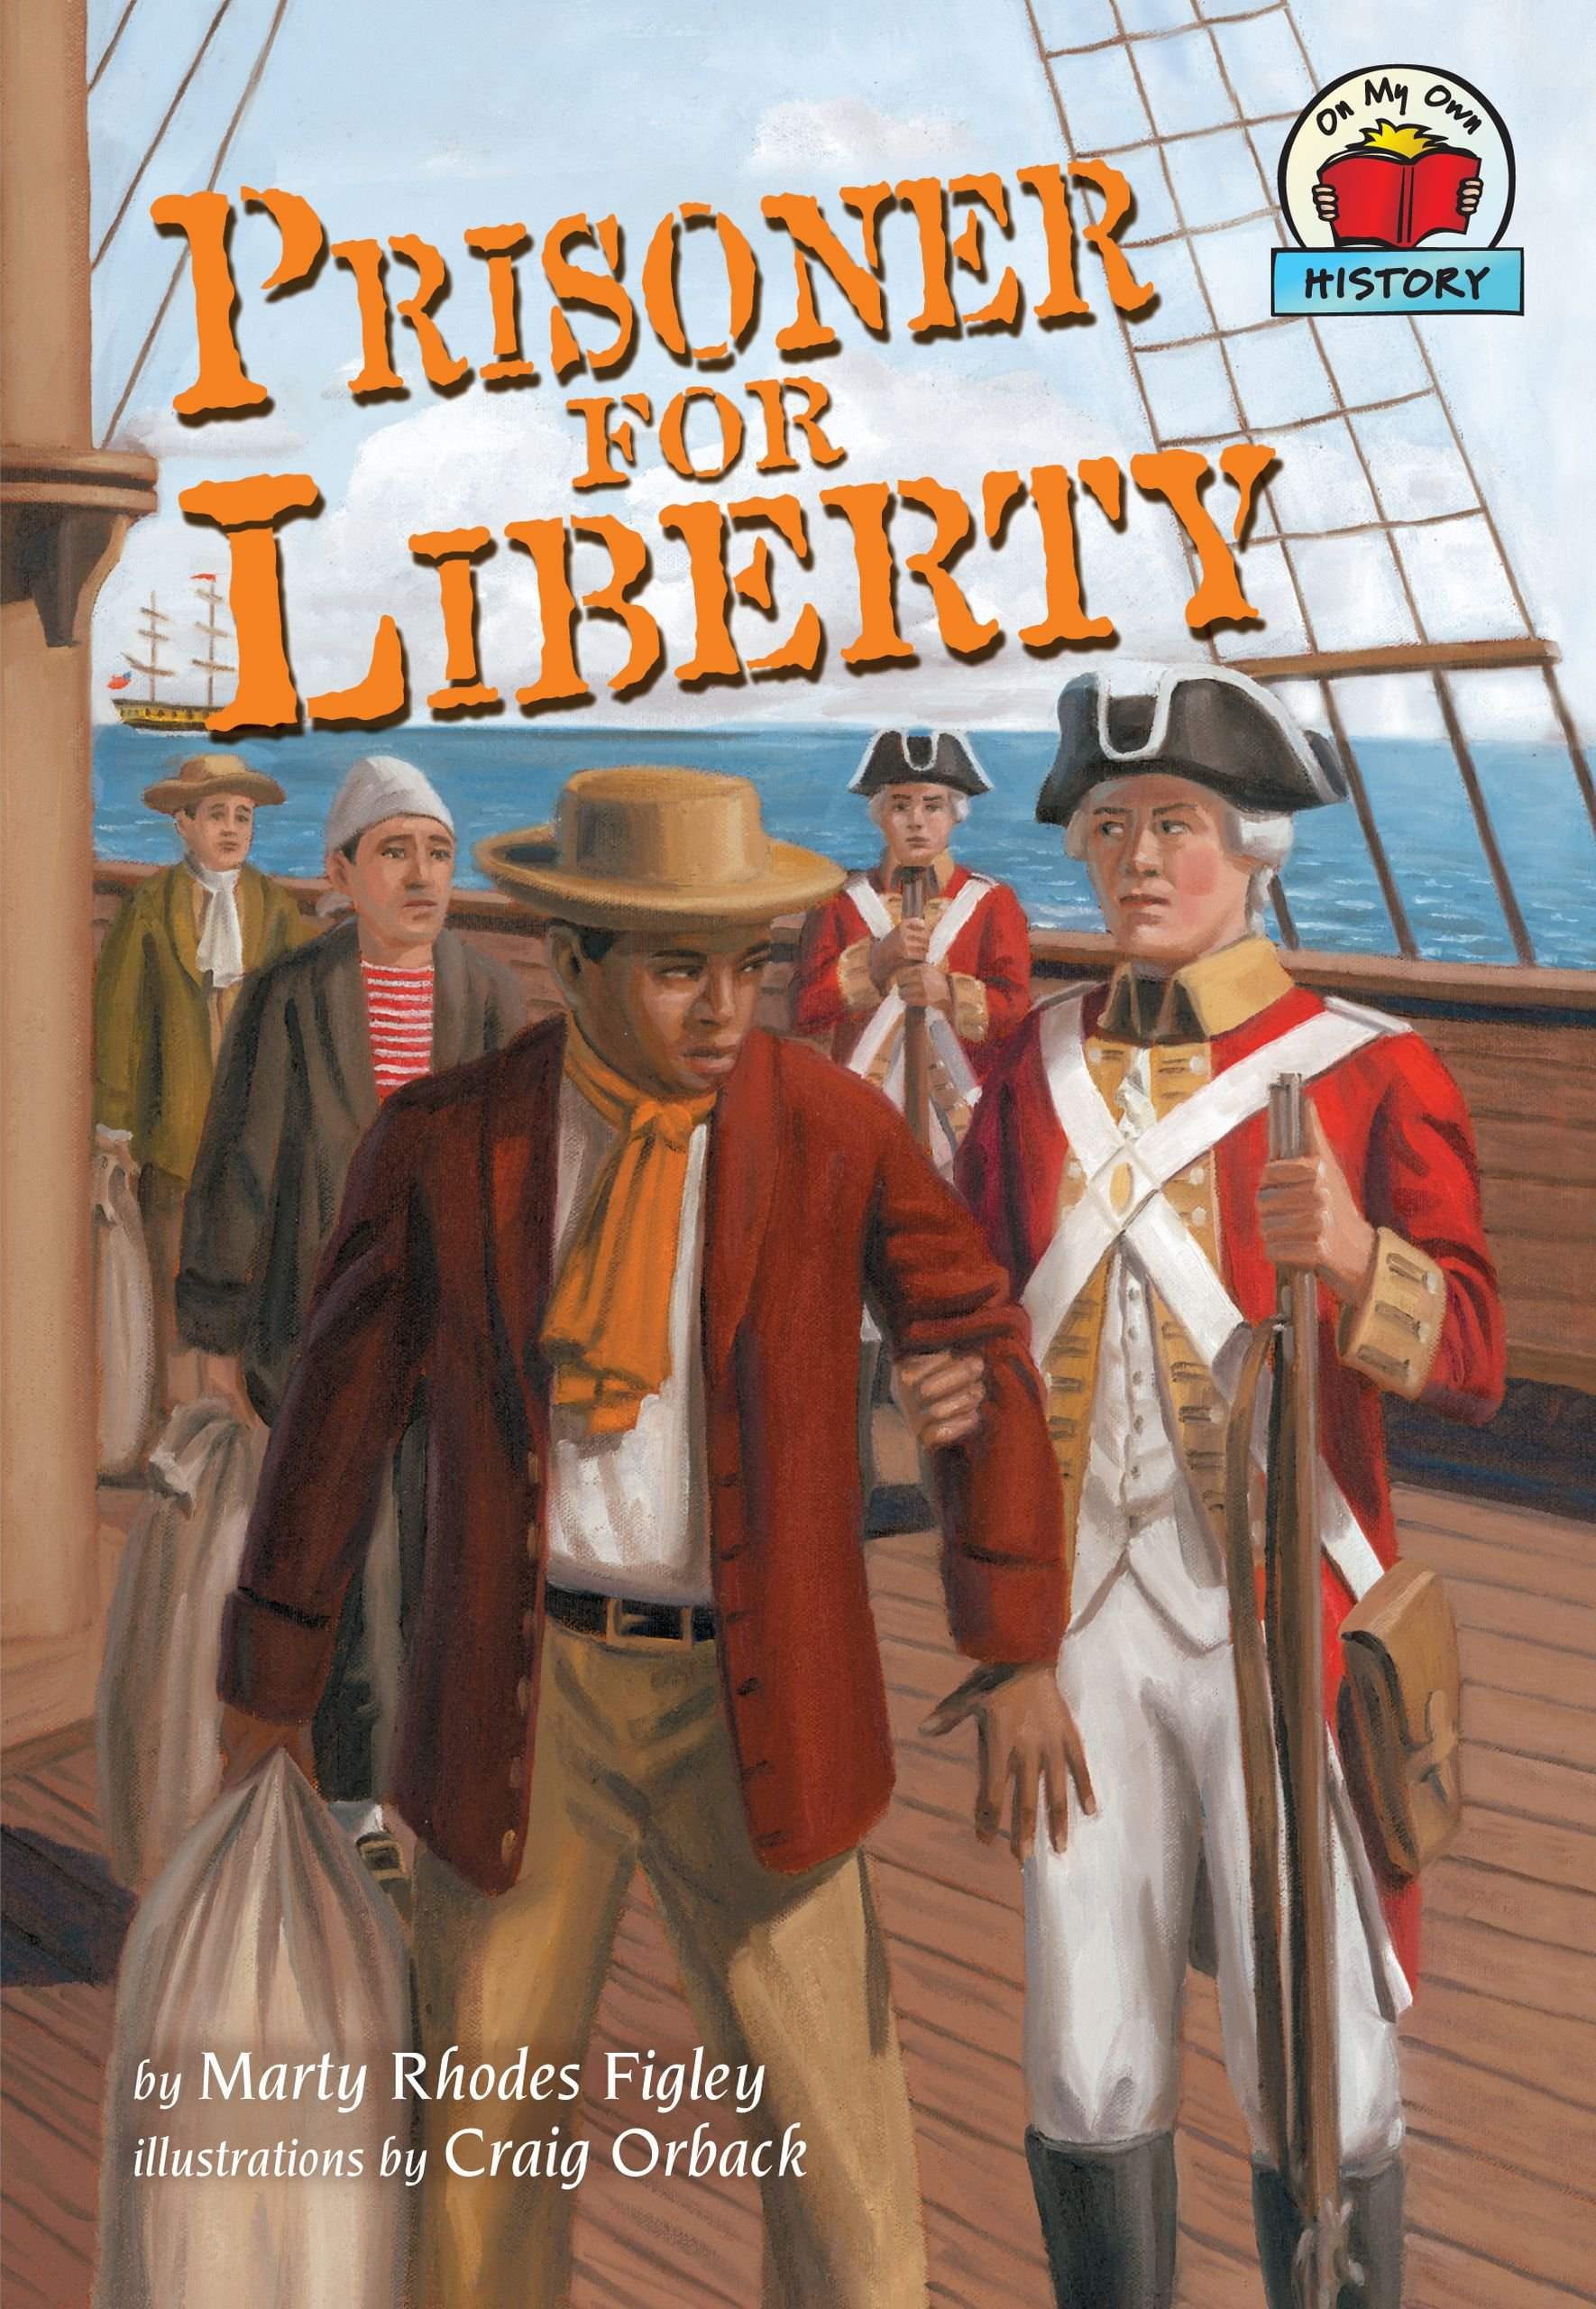 Prisoner for Liberty (On My Own History)